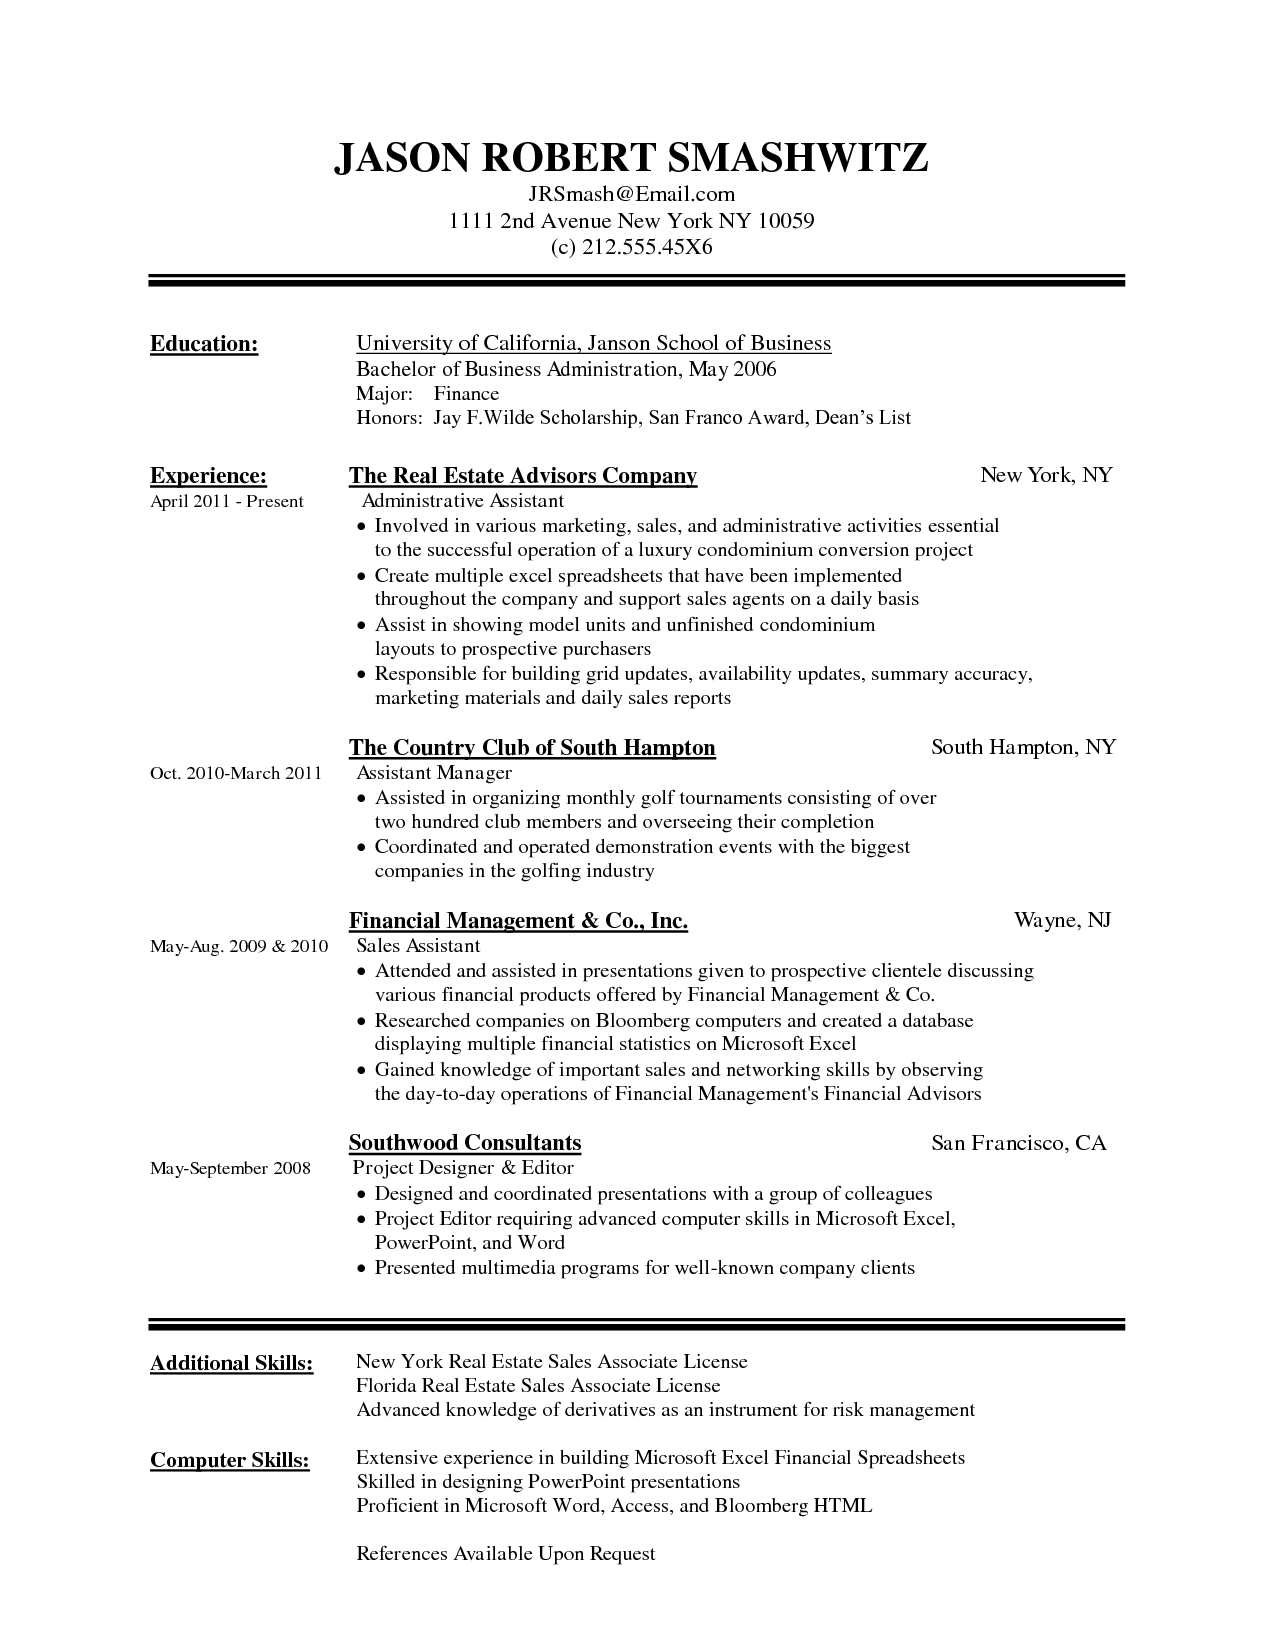 Resume Template Resume Builder Templates Free. Volumetrics.co